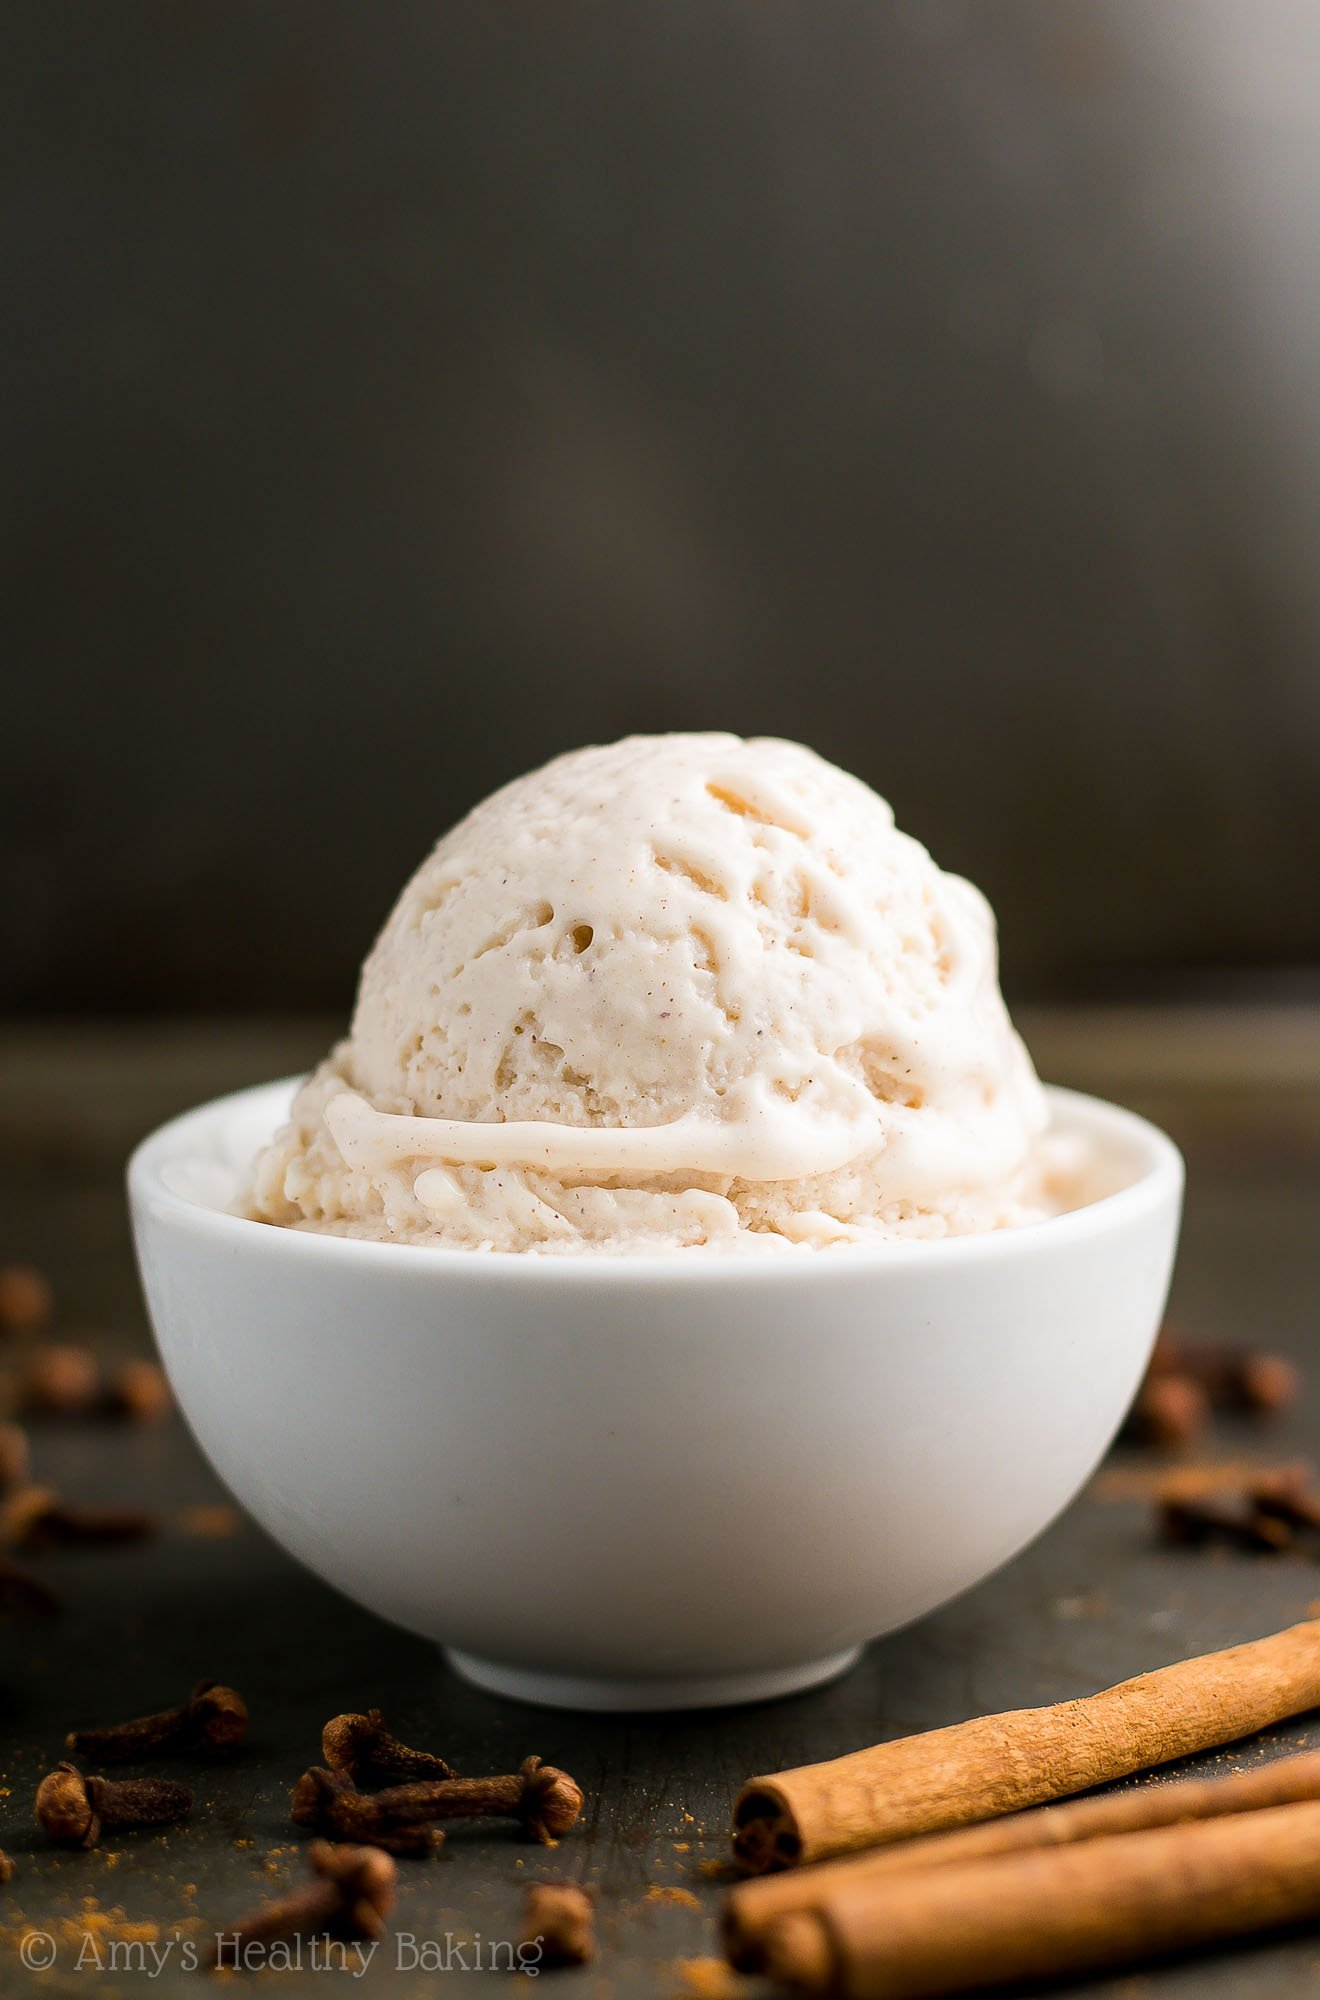 25-Minute Healthy Chai Spice Ice Cream | Amy's Healthy Baking